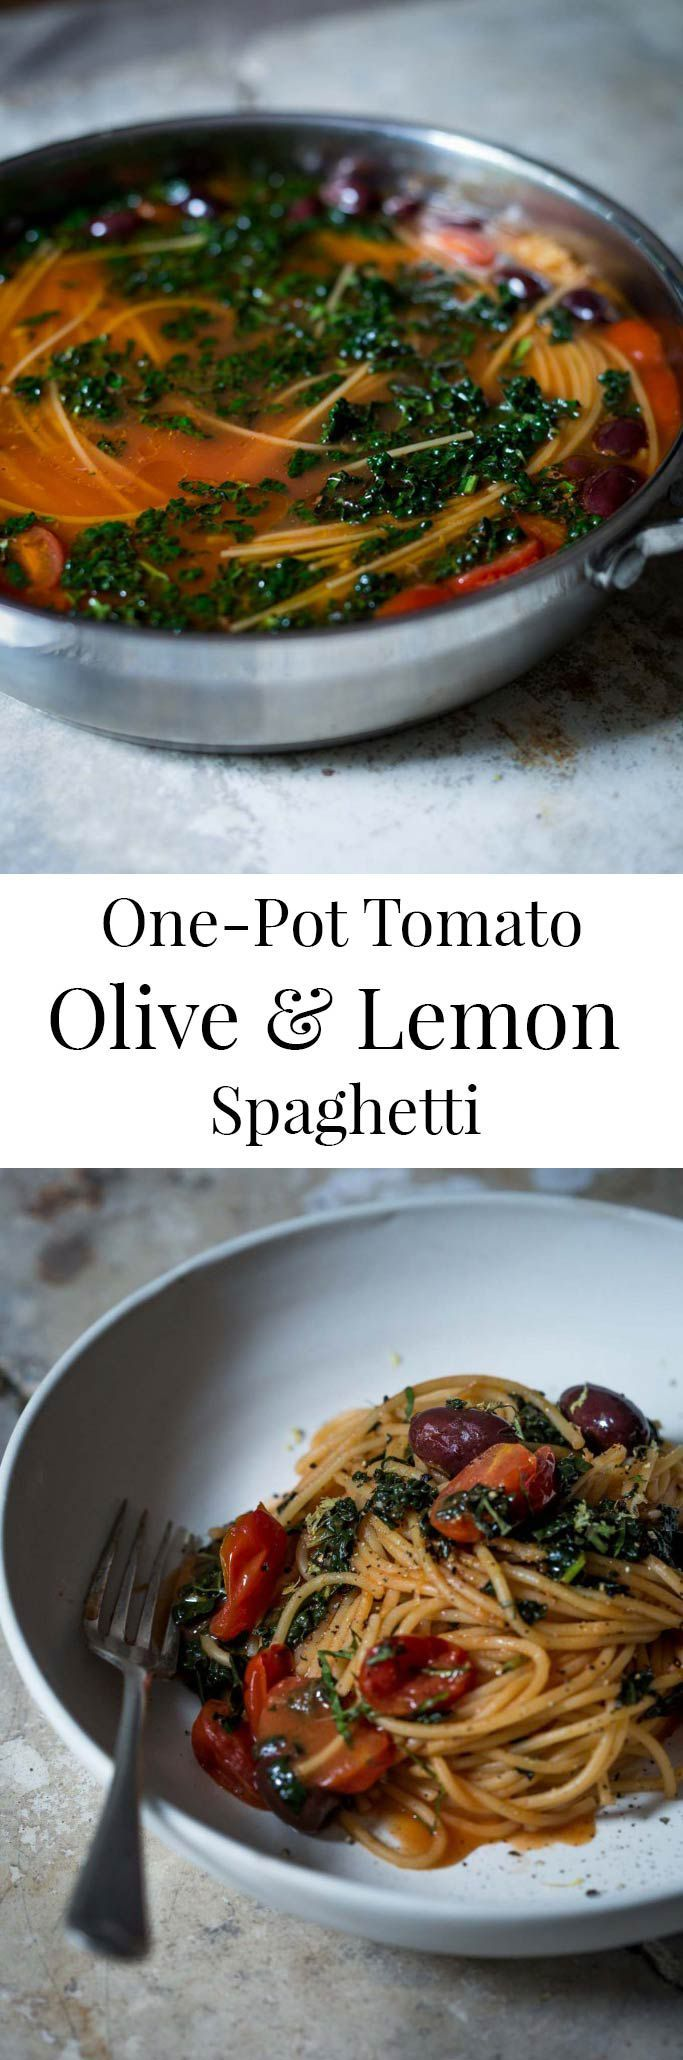 Ready in 10-minutes, this one-pot tomato olive amp; lemon spaghetti is the perfect full-bodied vegan pasta dish. Feeds four with some to spare.